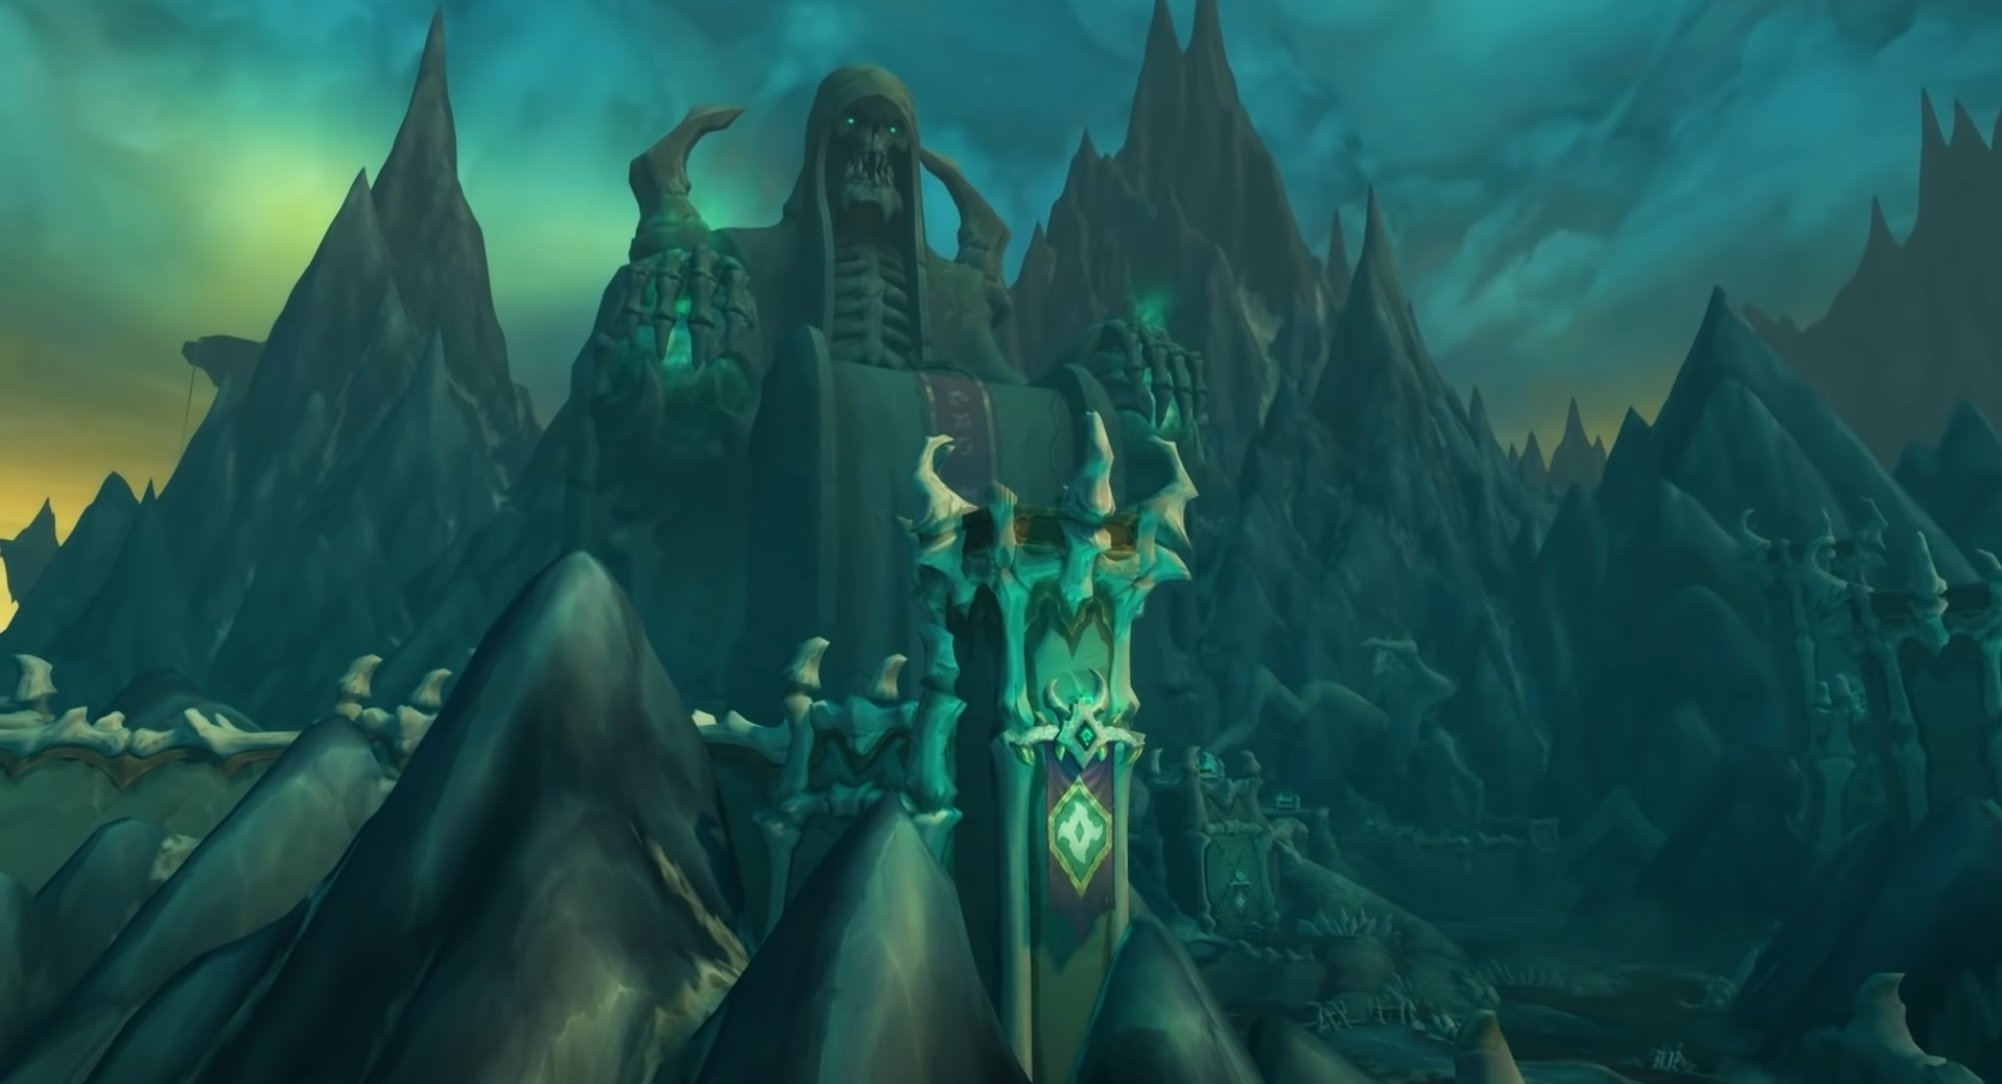 Hefting The Hidden Epic Sword Sorrowbane In World Of Warcraft: Shadowlands